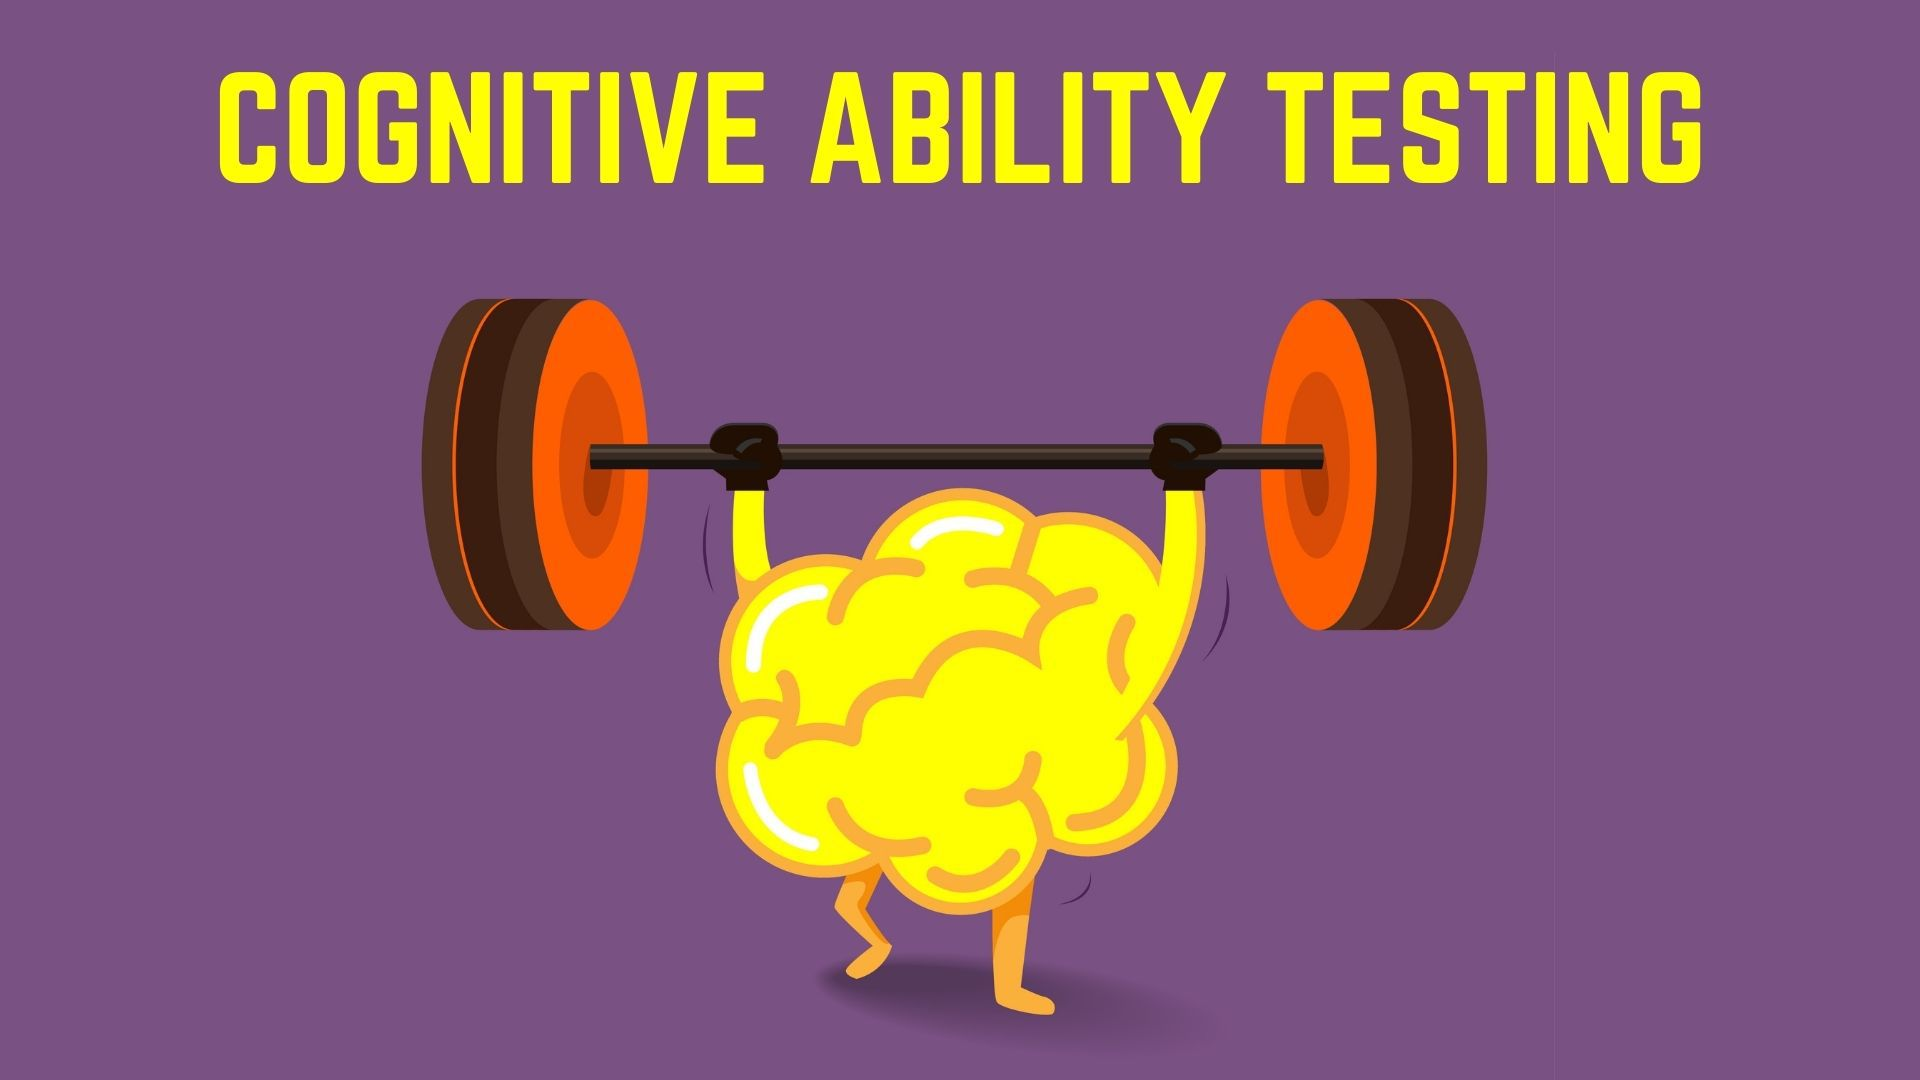 What is Cognitive Ability Testing